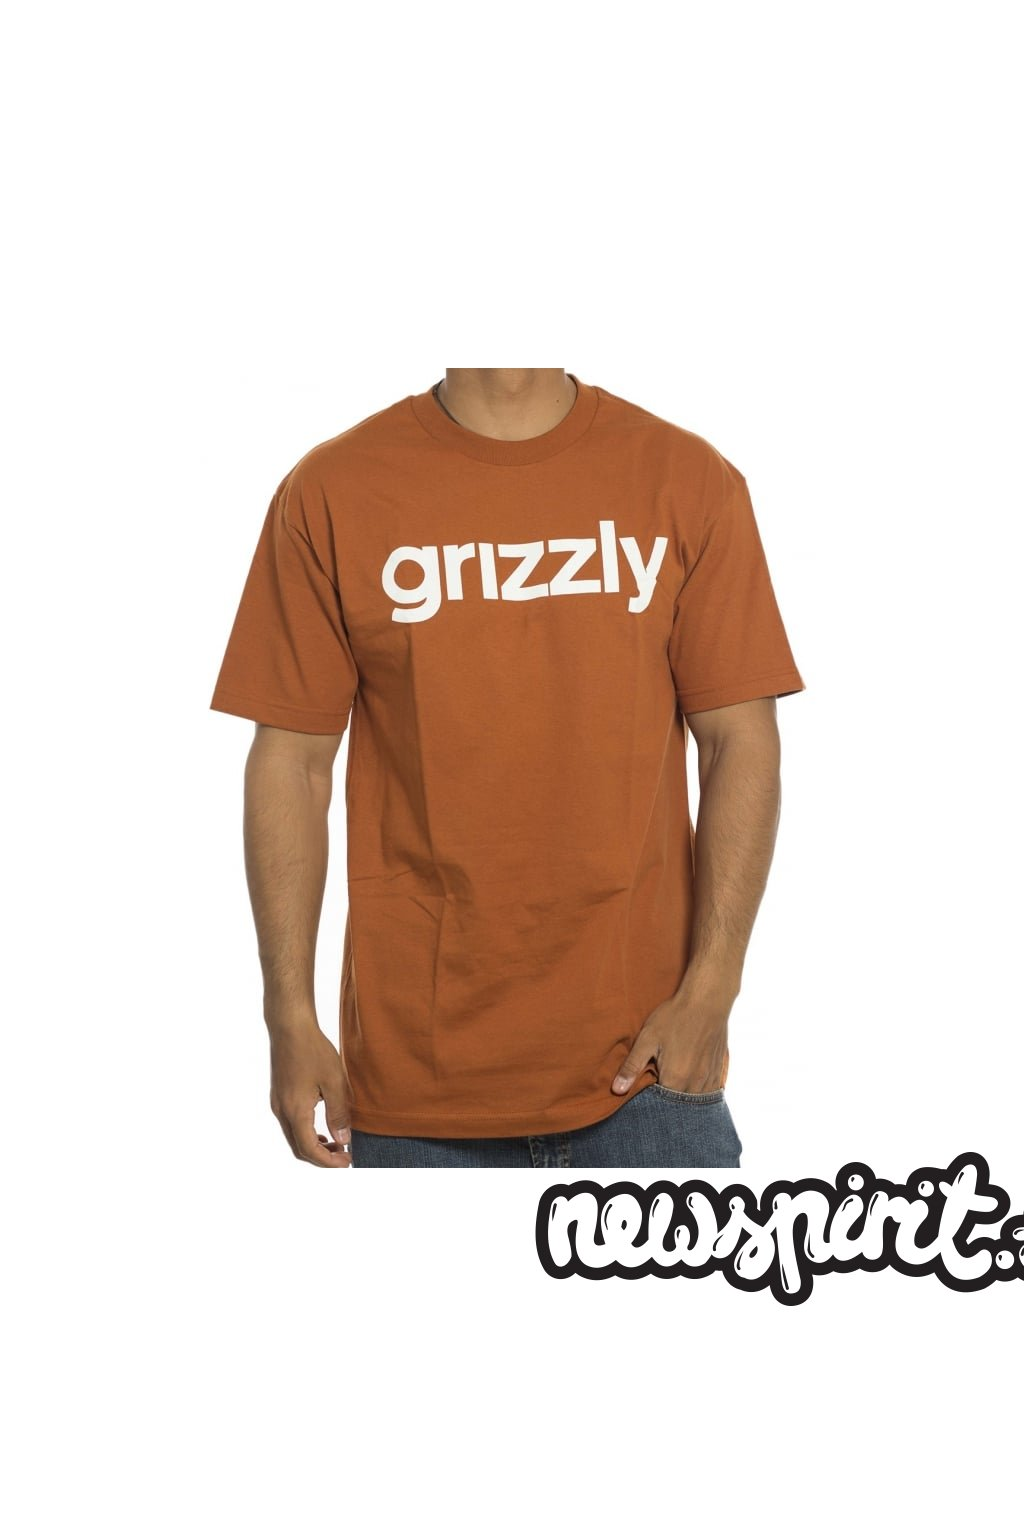 Tričko Grizzly Lowercase Texas Orange